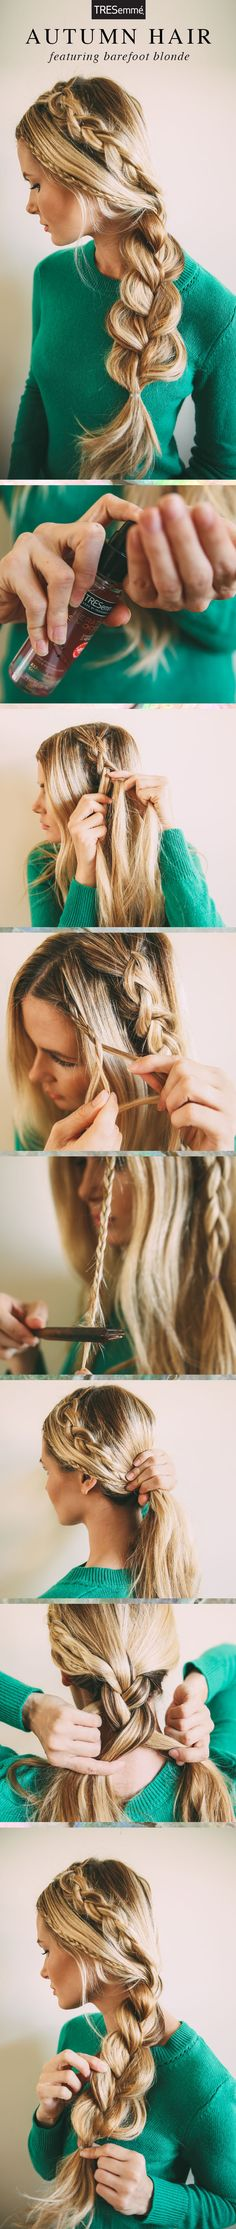 Pulled-out braid...